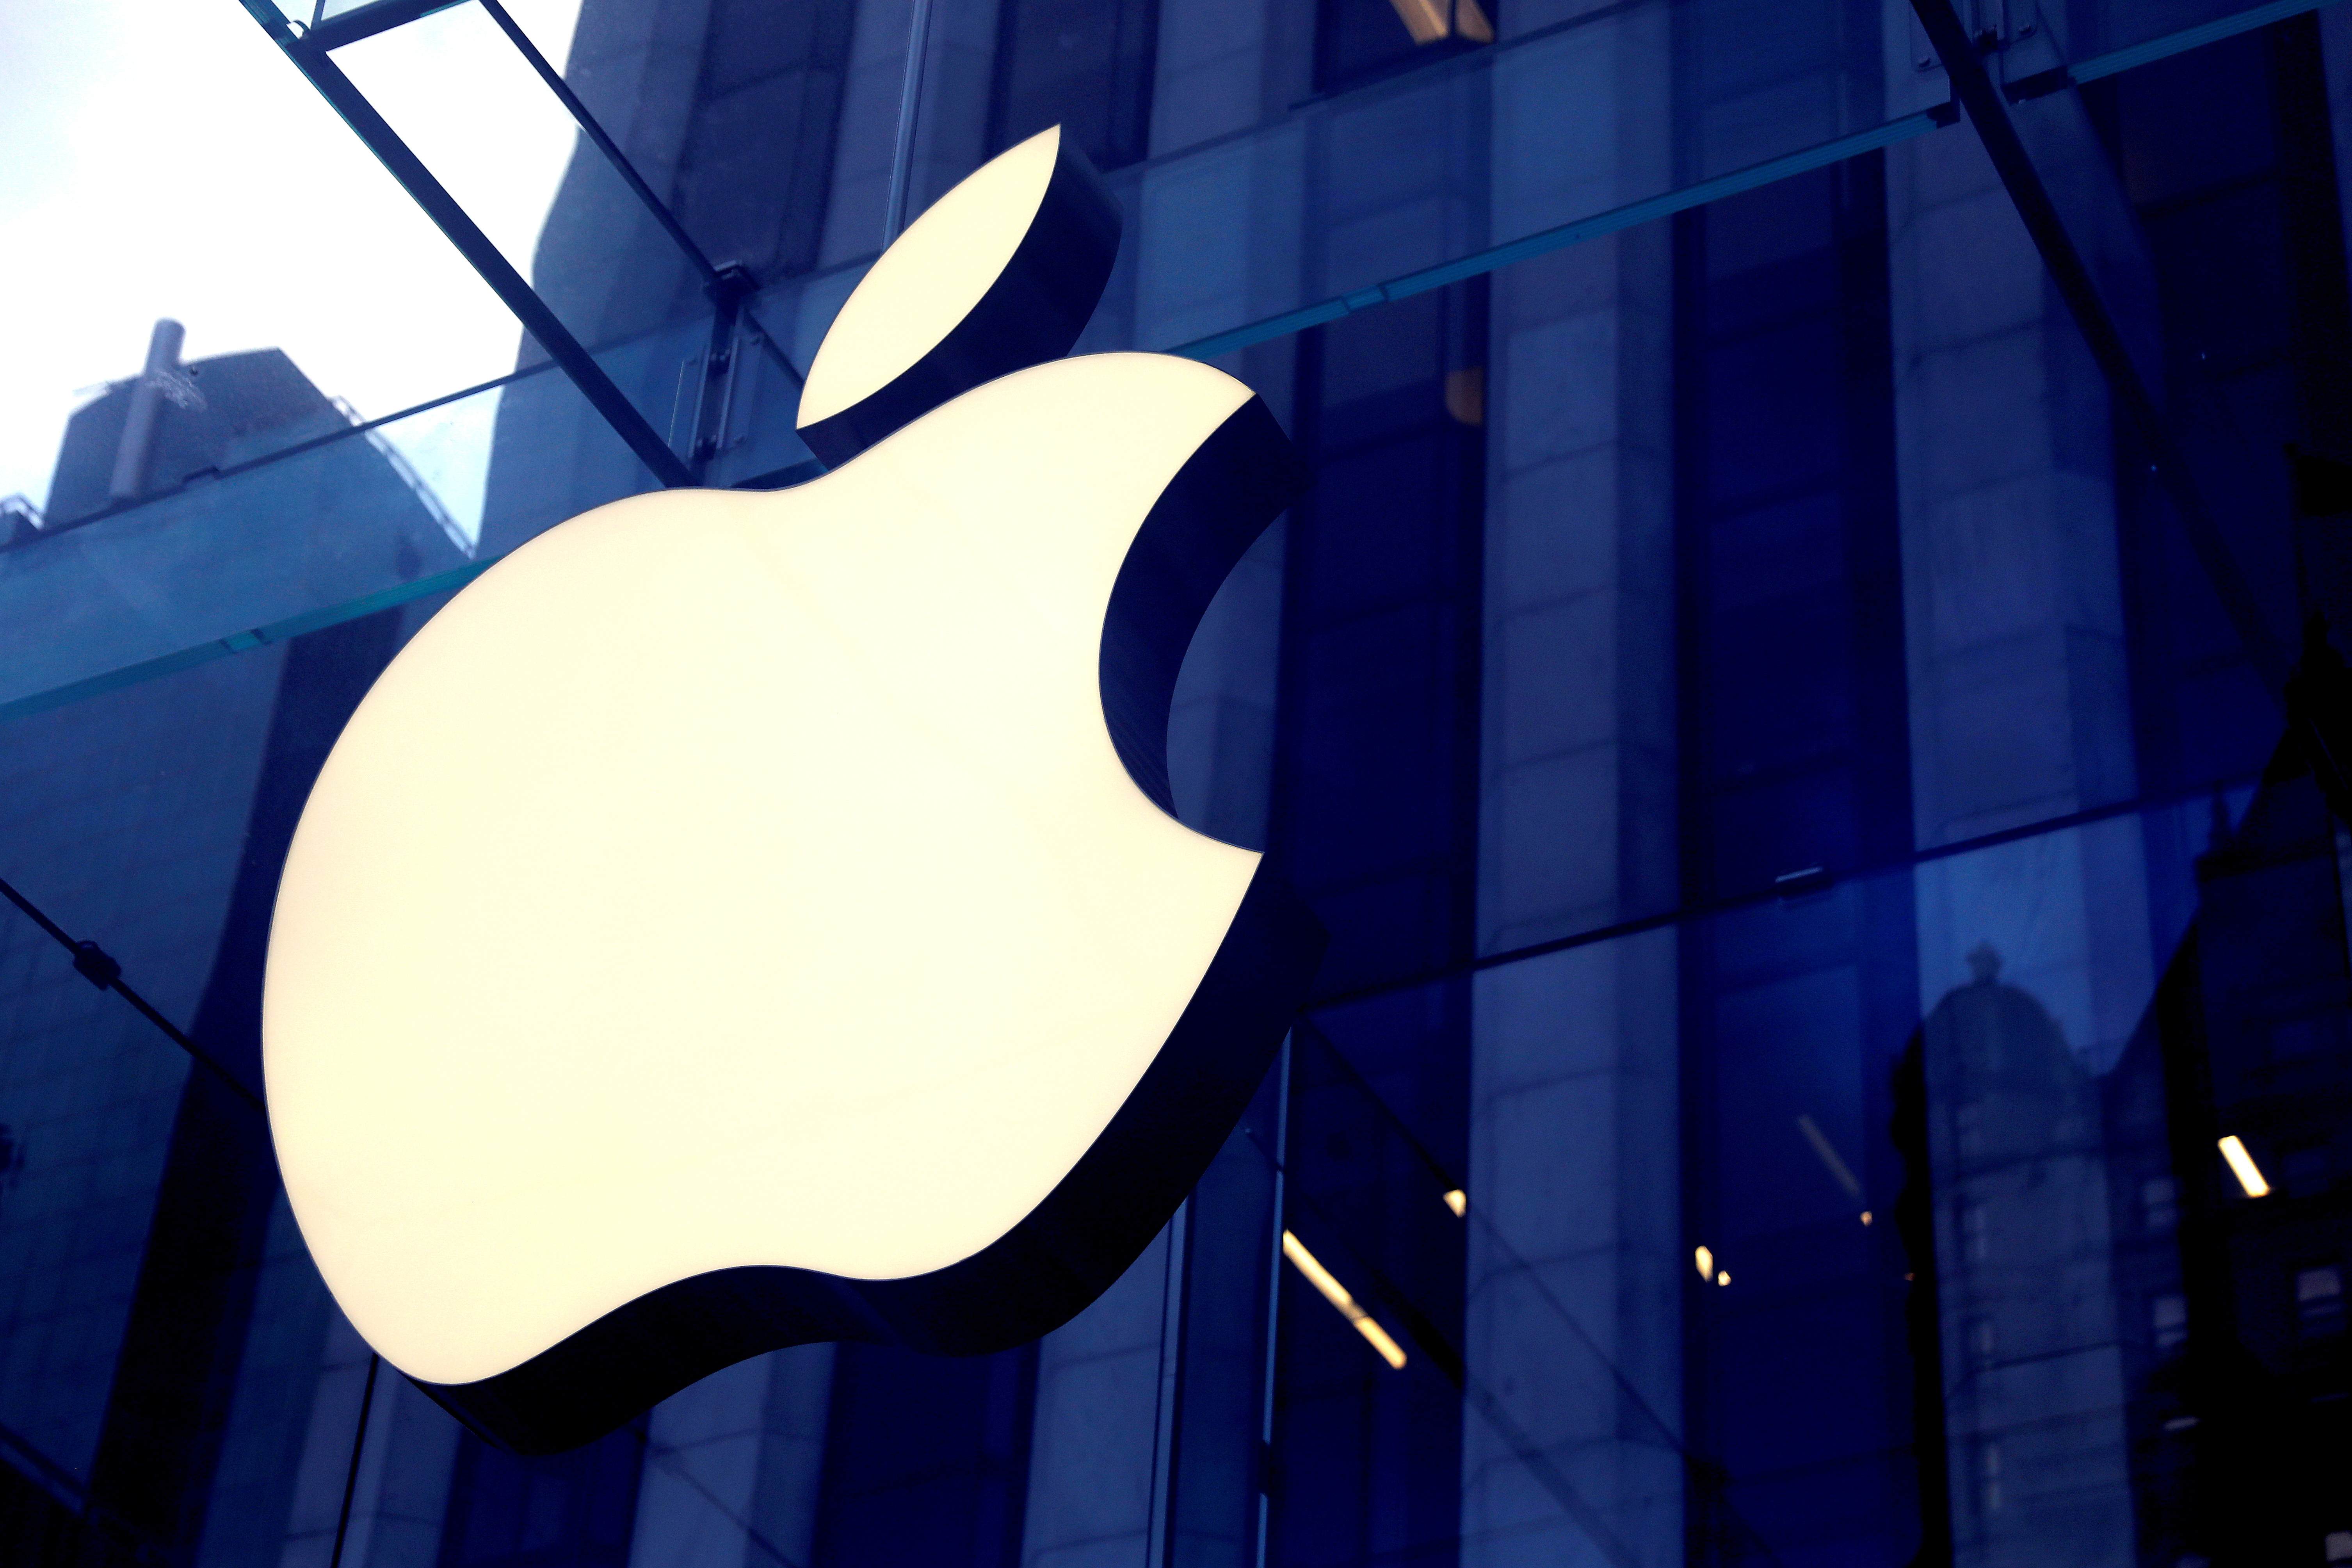 The Apple Inc logo is seen hanging at the entrance to the Apple store on 5th Avenue in Manhattan, New York, U.S., October 16, 2019. REUTERS/Mike Segar